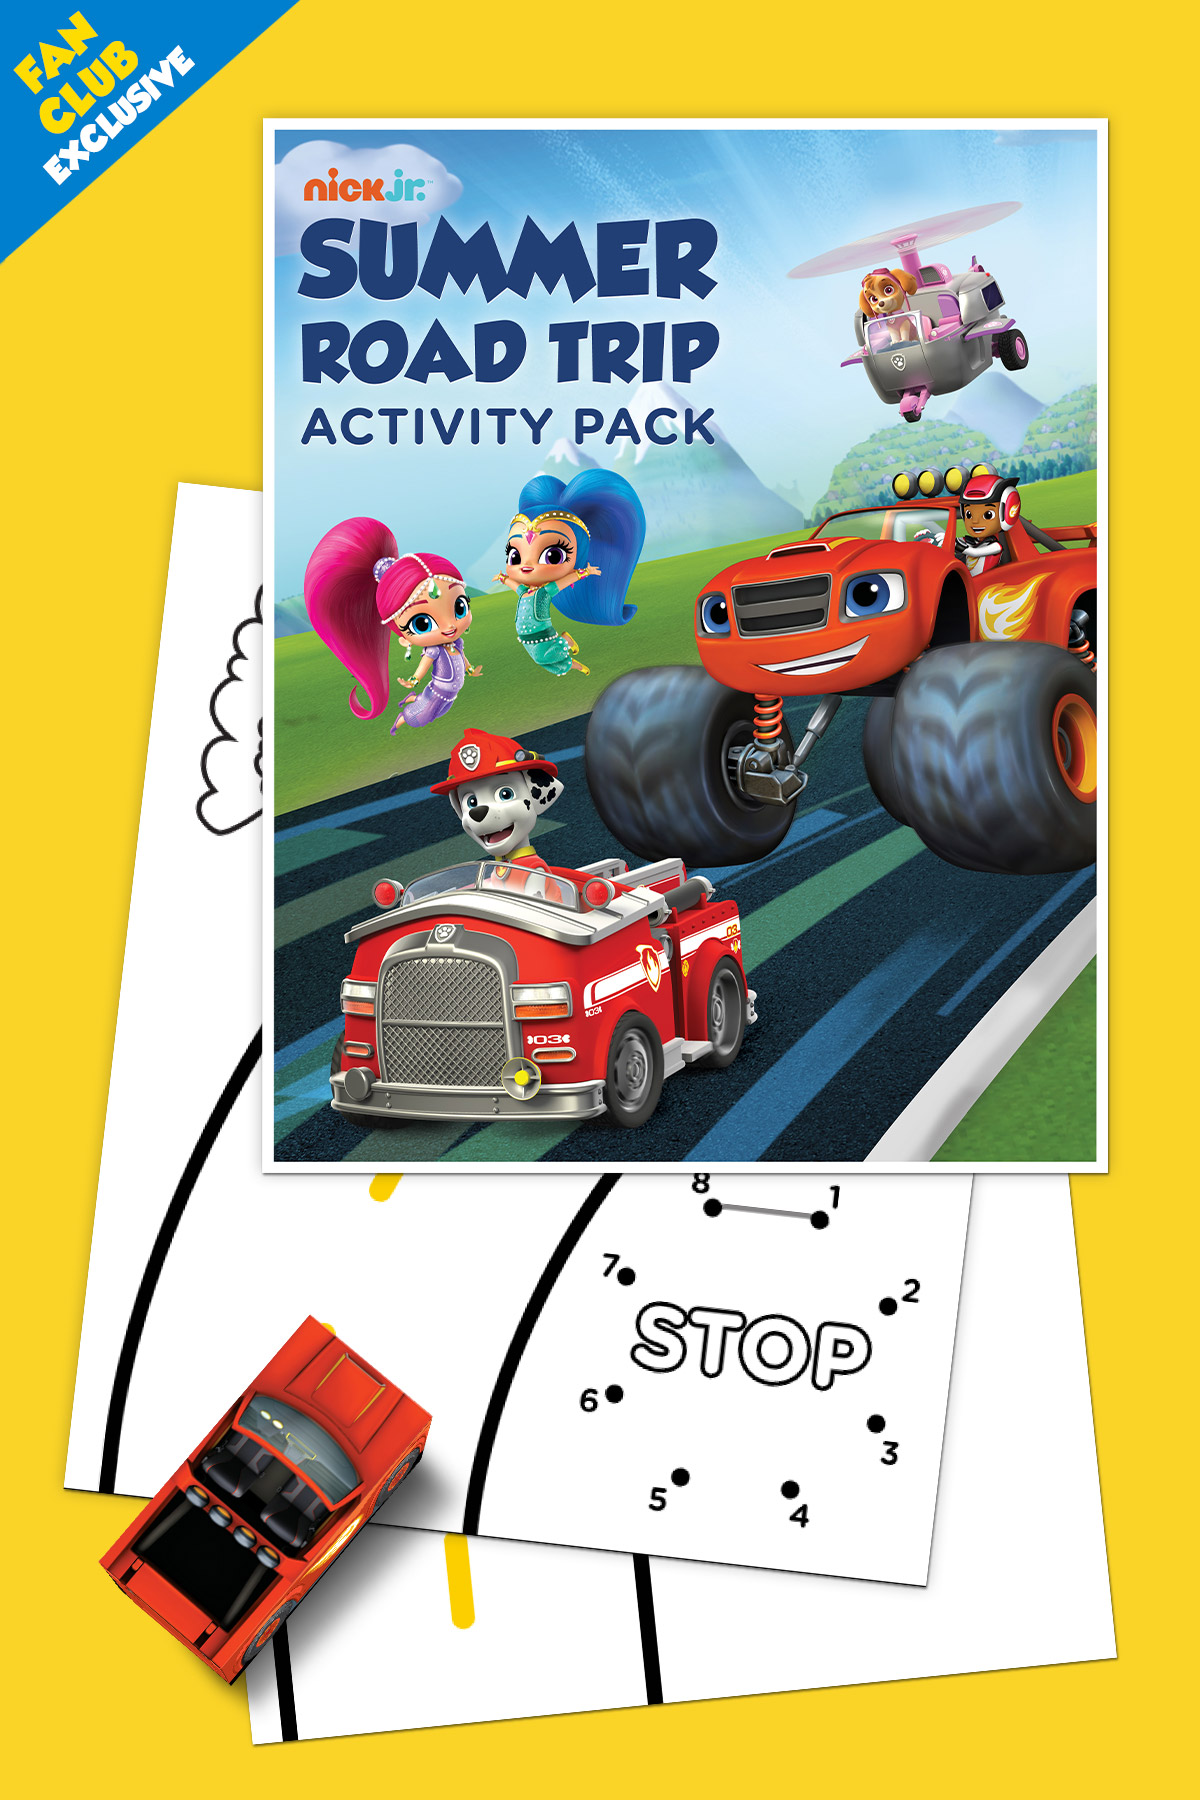 Fan Club Exclusive: Summer Road Trip Printable